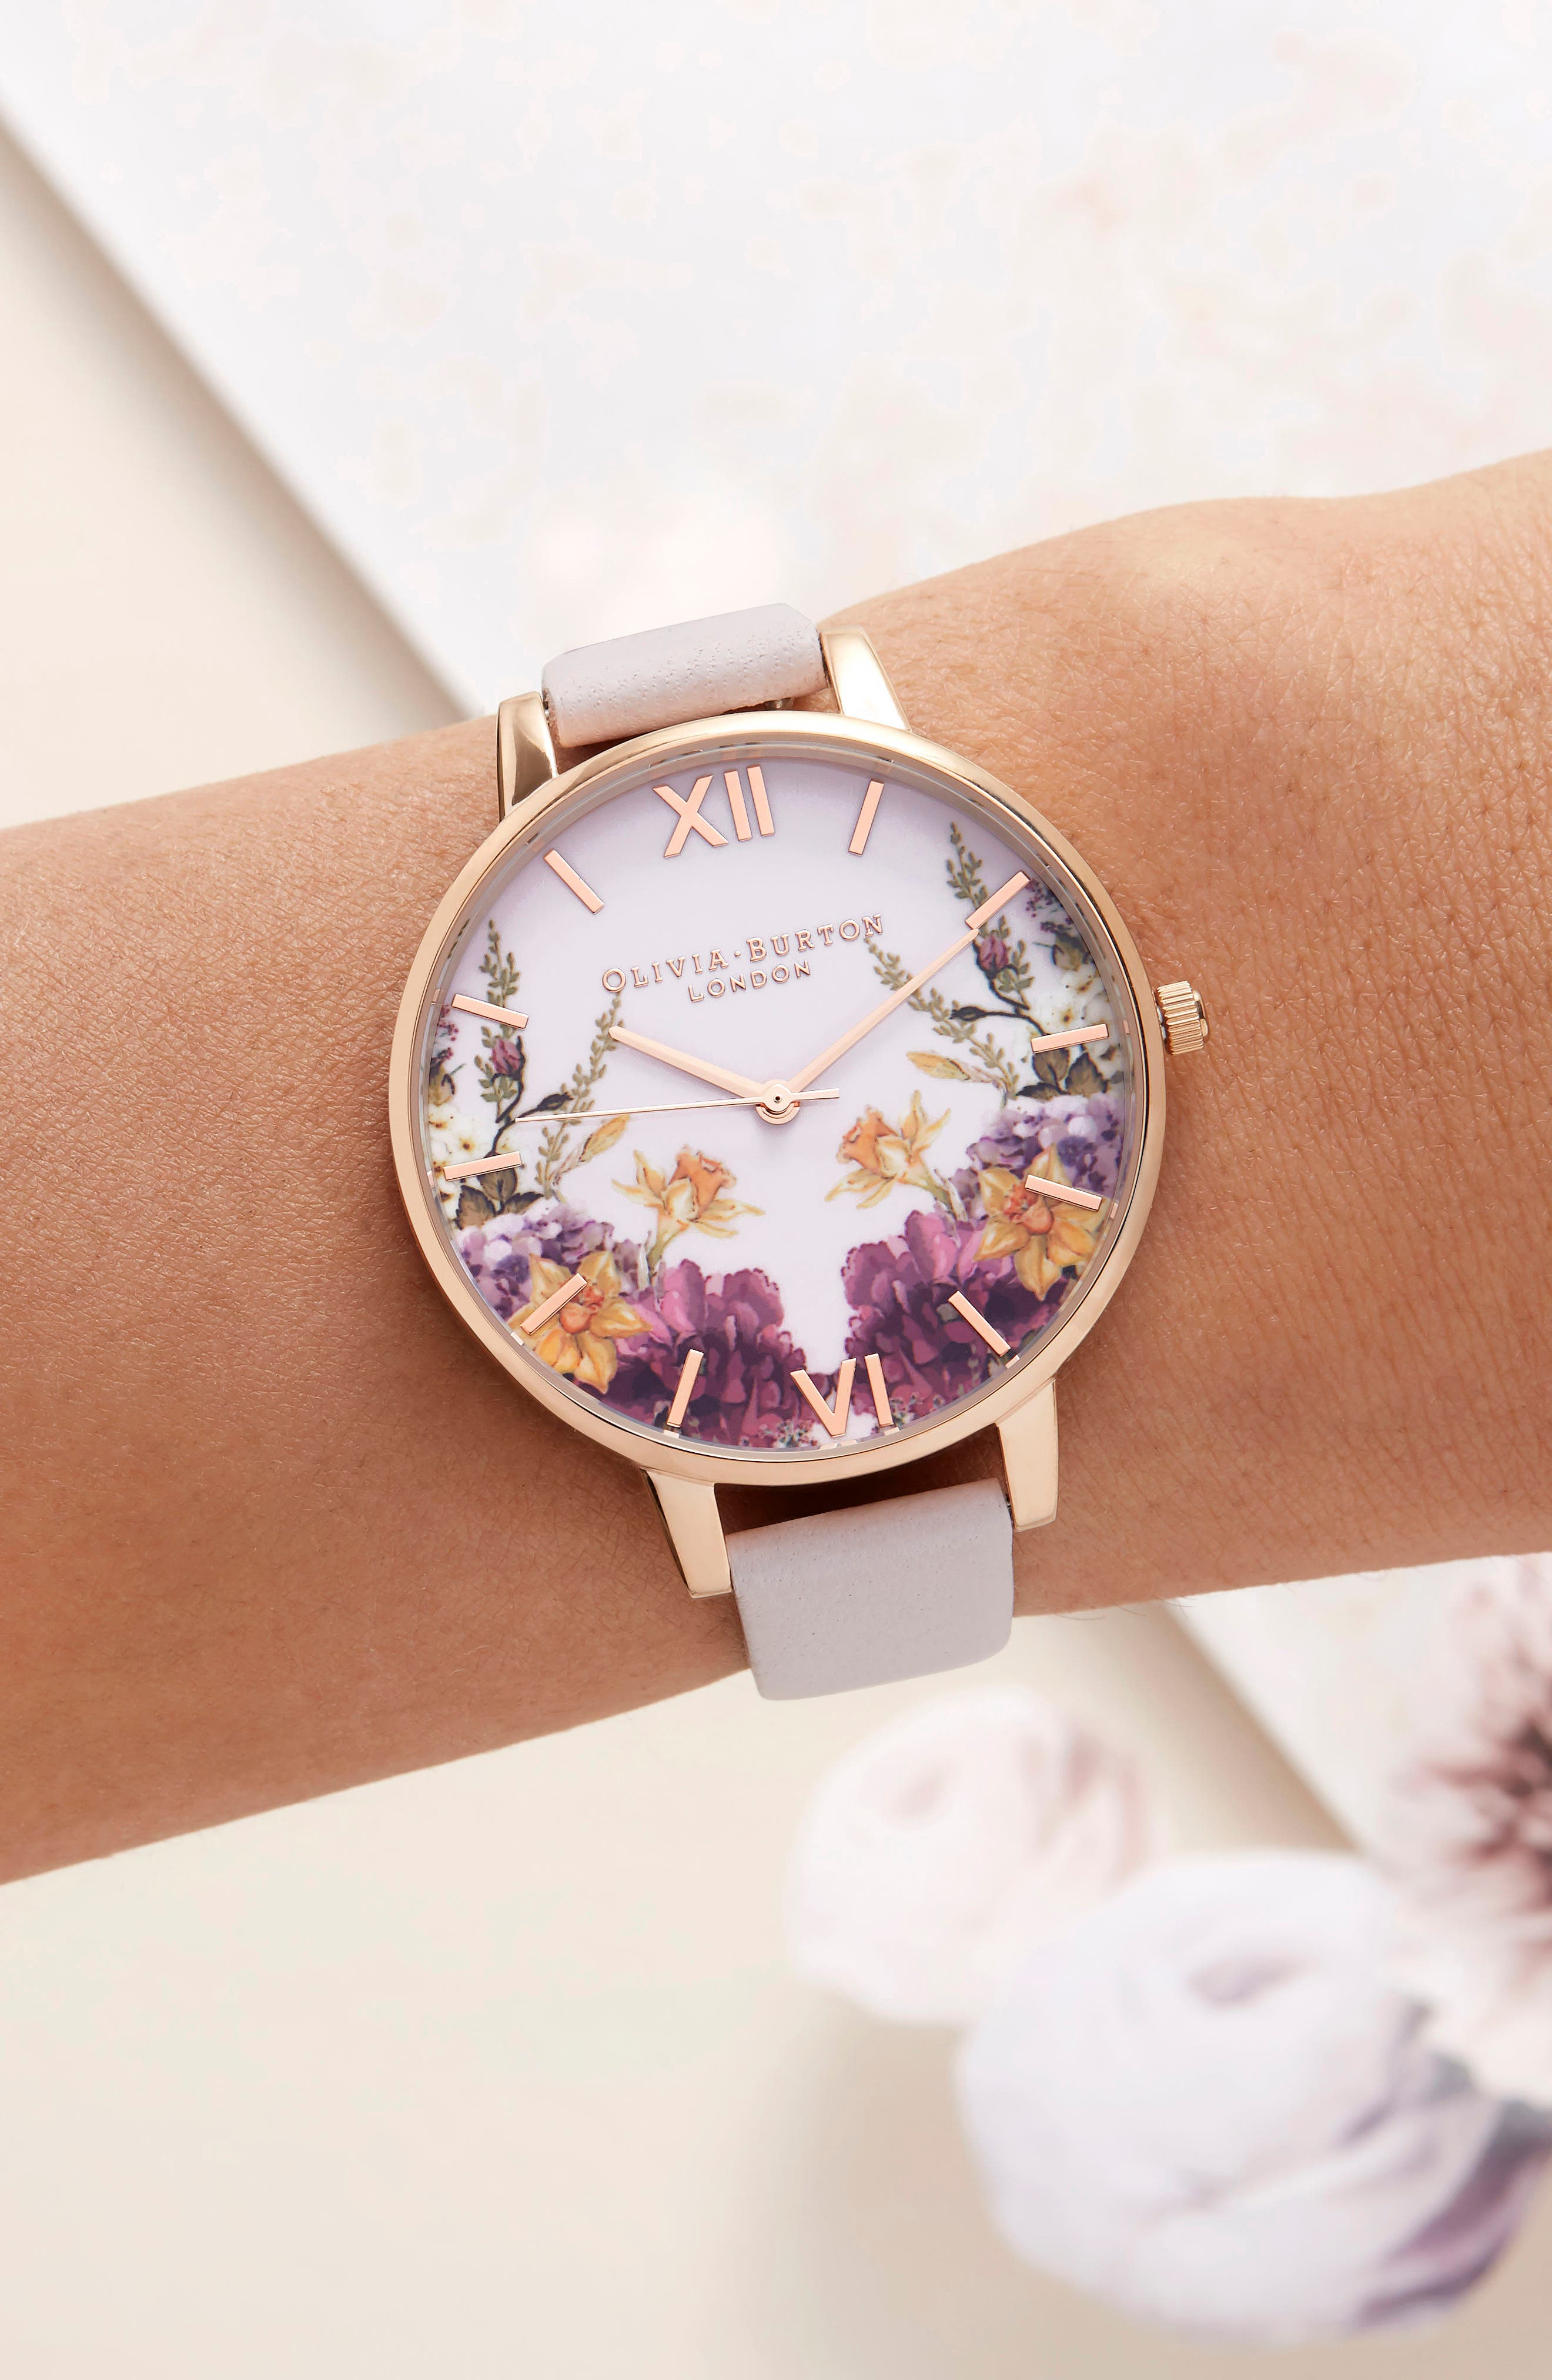 Enchanted Garden Leather Strap Watch, 38mm,                             Alternate thumbnail 2, color,                             Blossom/ Pink/ Rose Gold